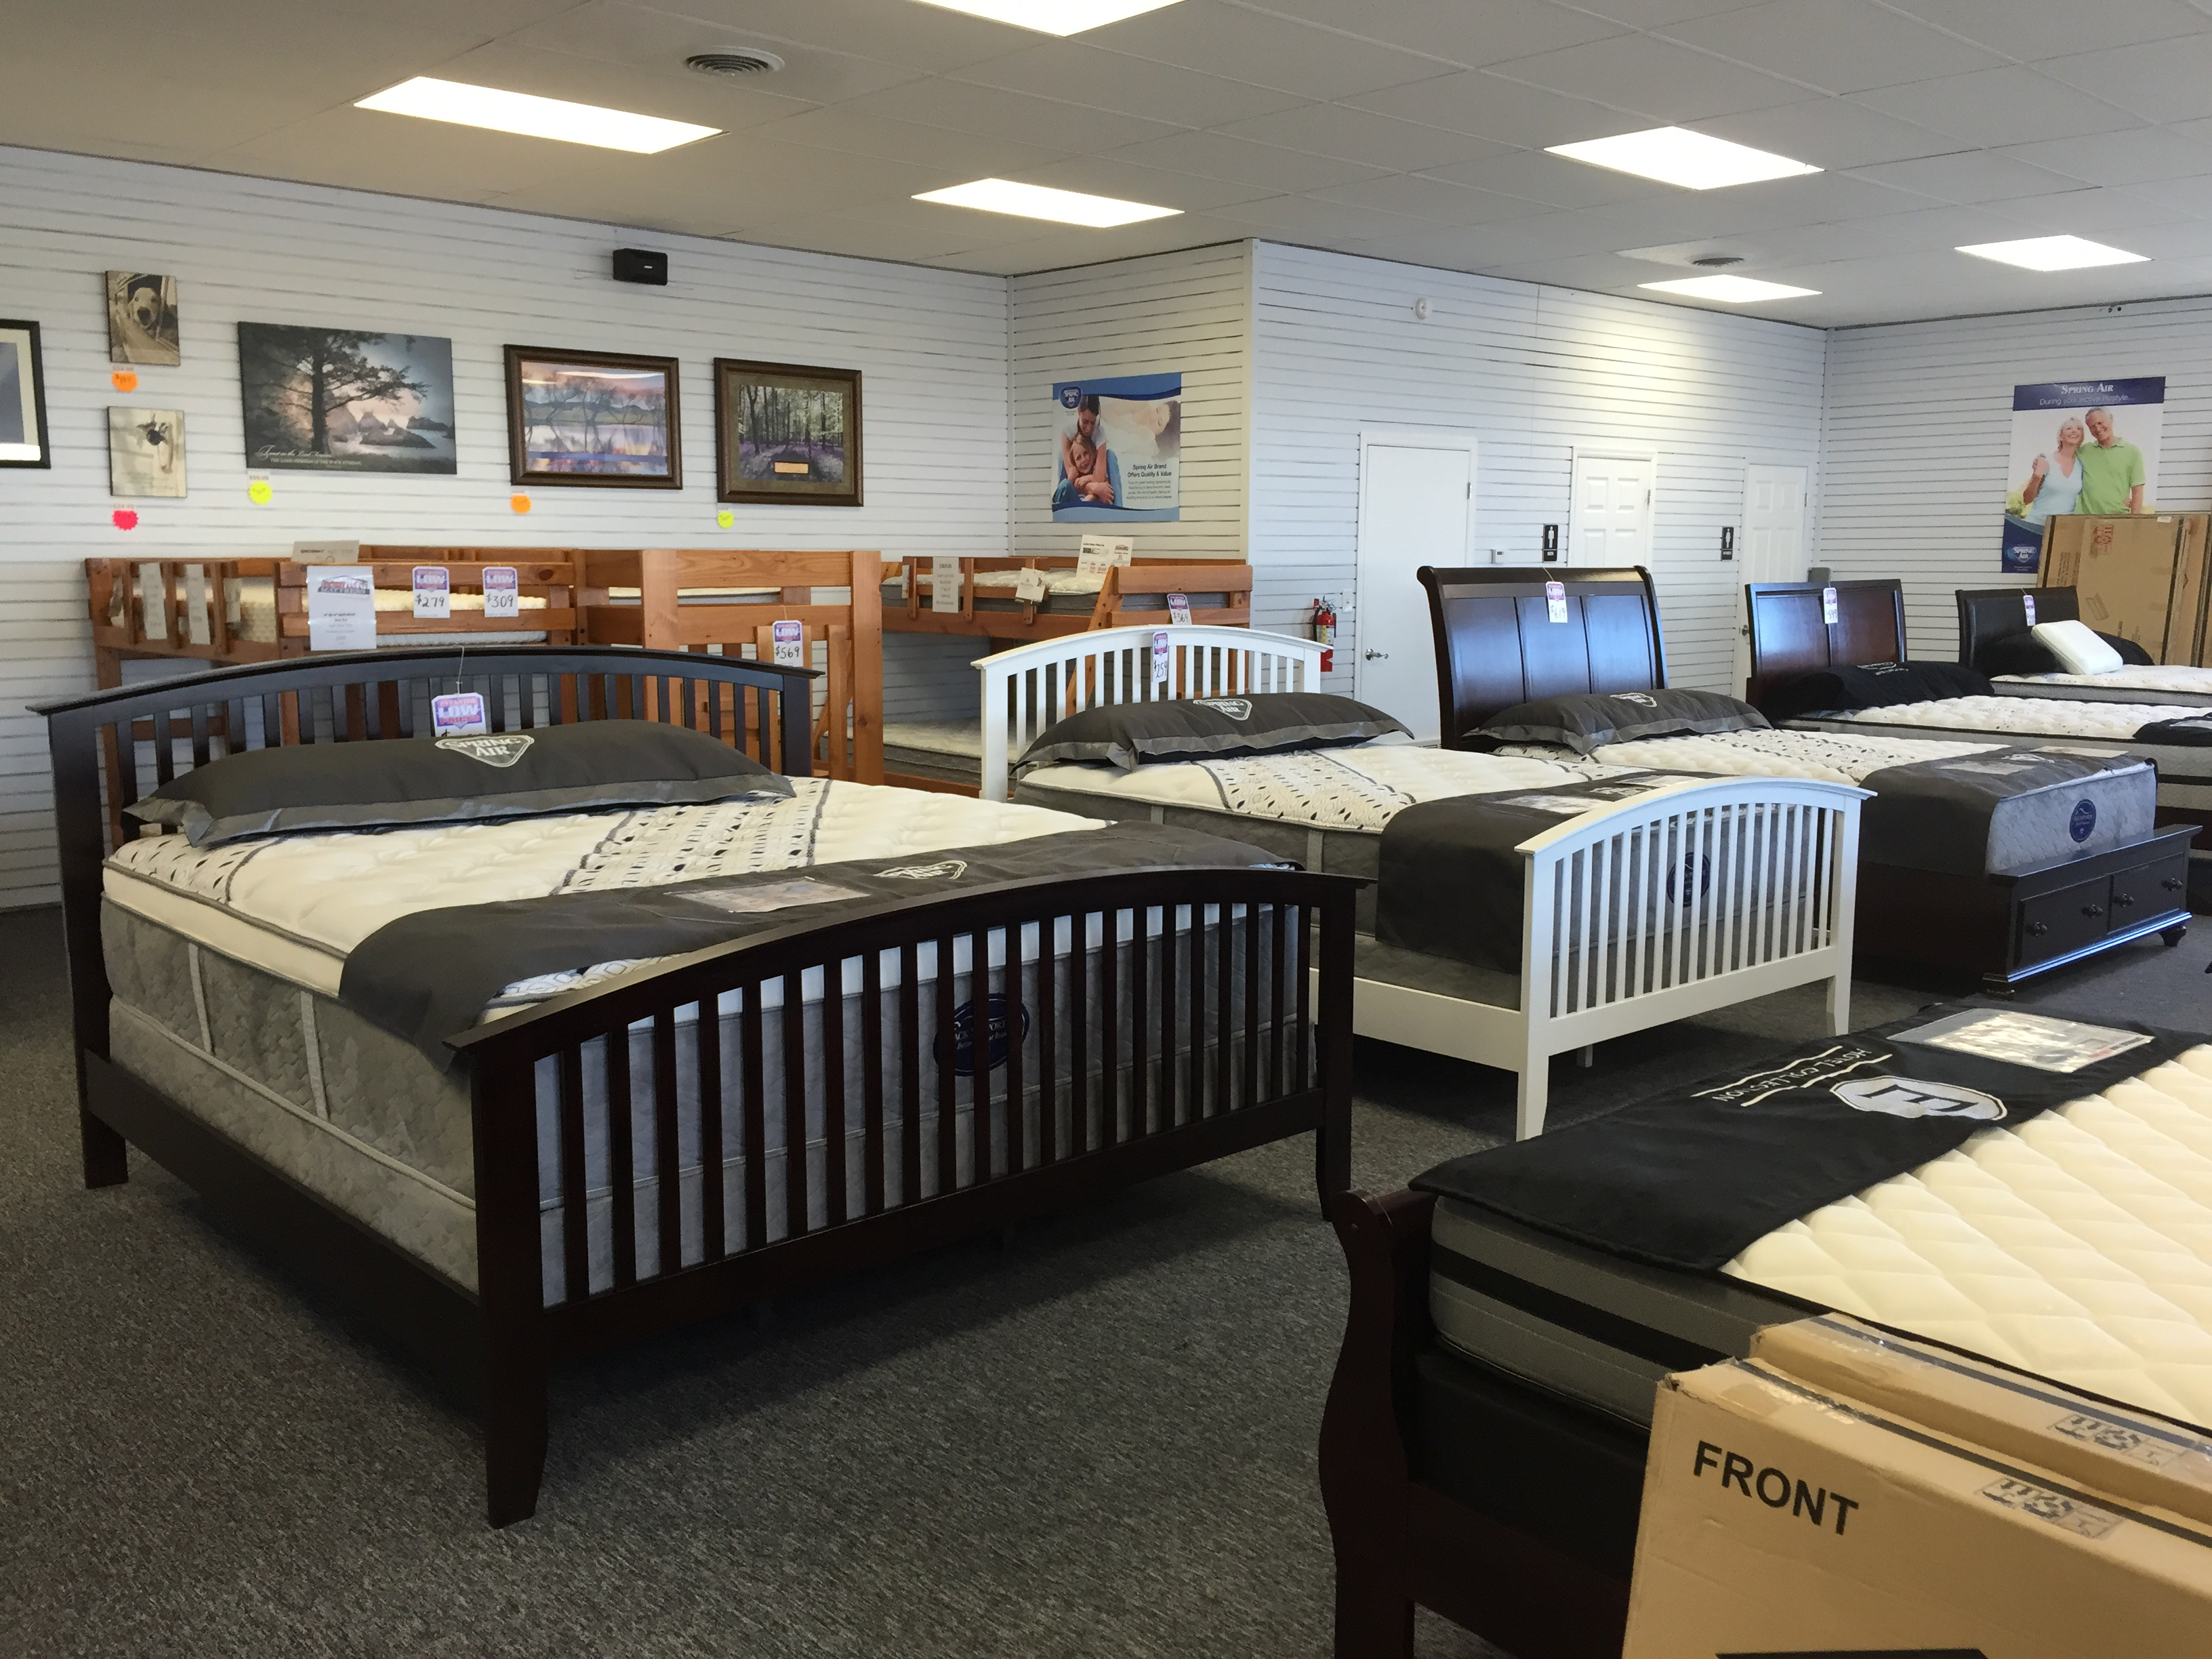 Valumaxx Mattress Factory Direct Mattress In Davenport Ia 563 391 4